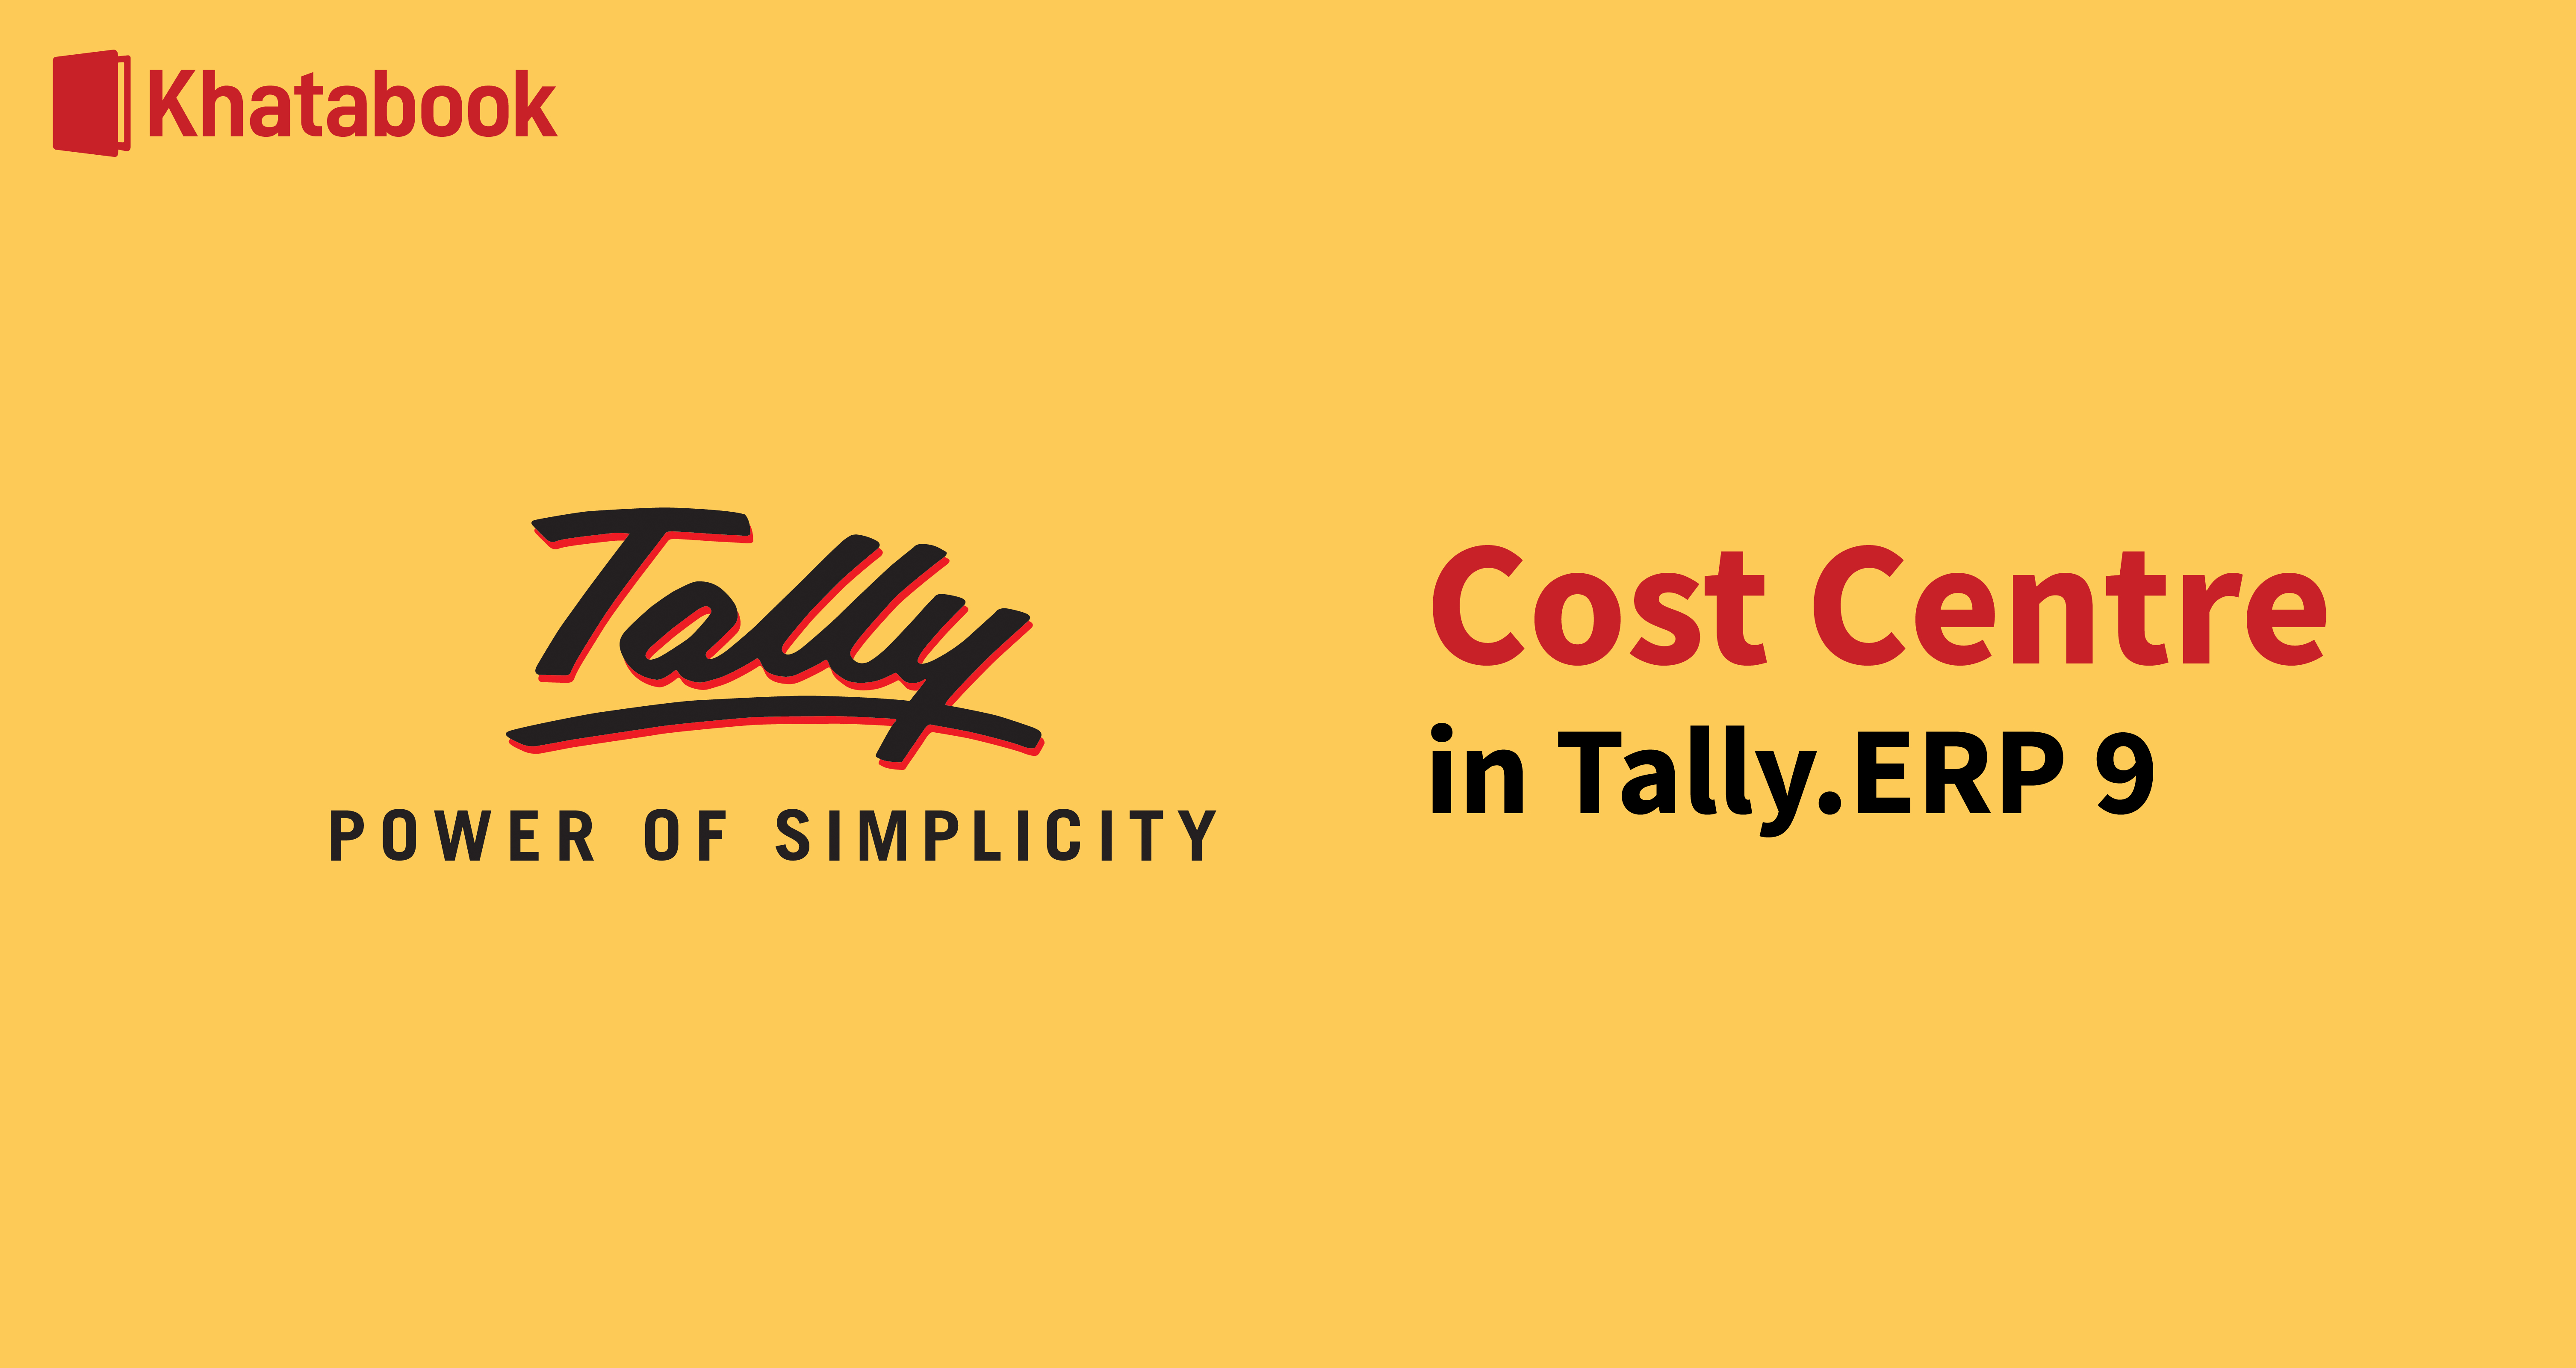 All About Tally.ERP 9's Cost Centre